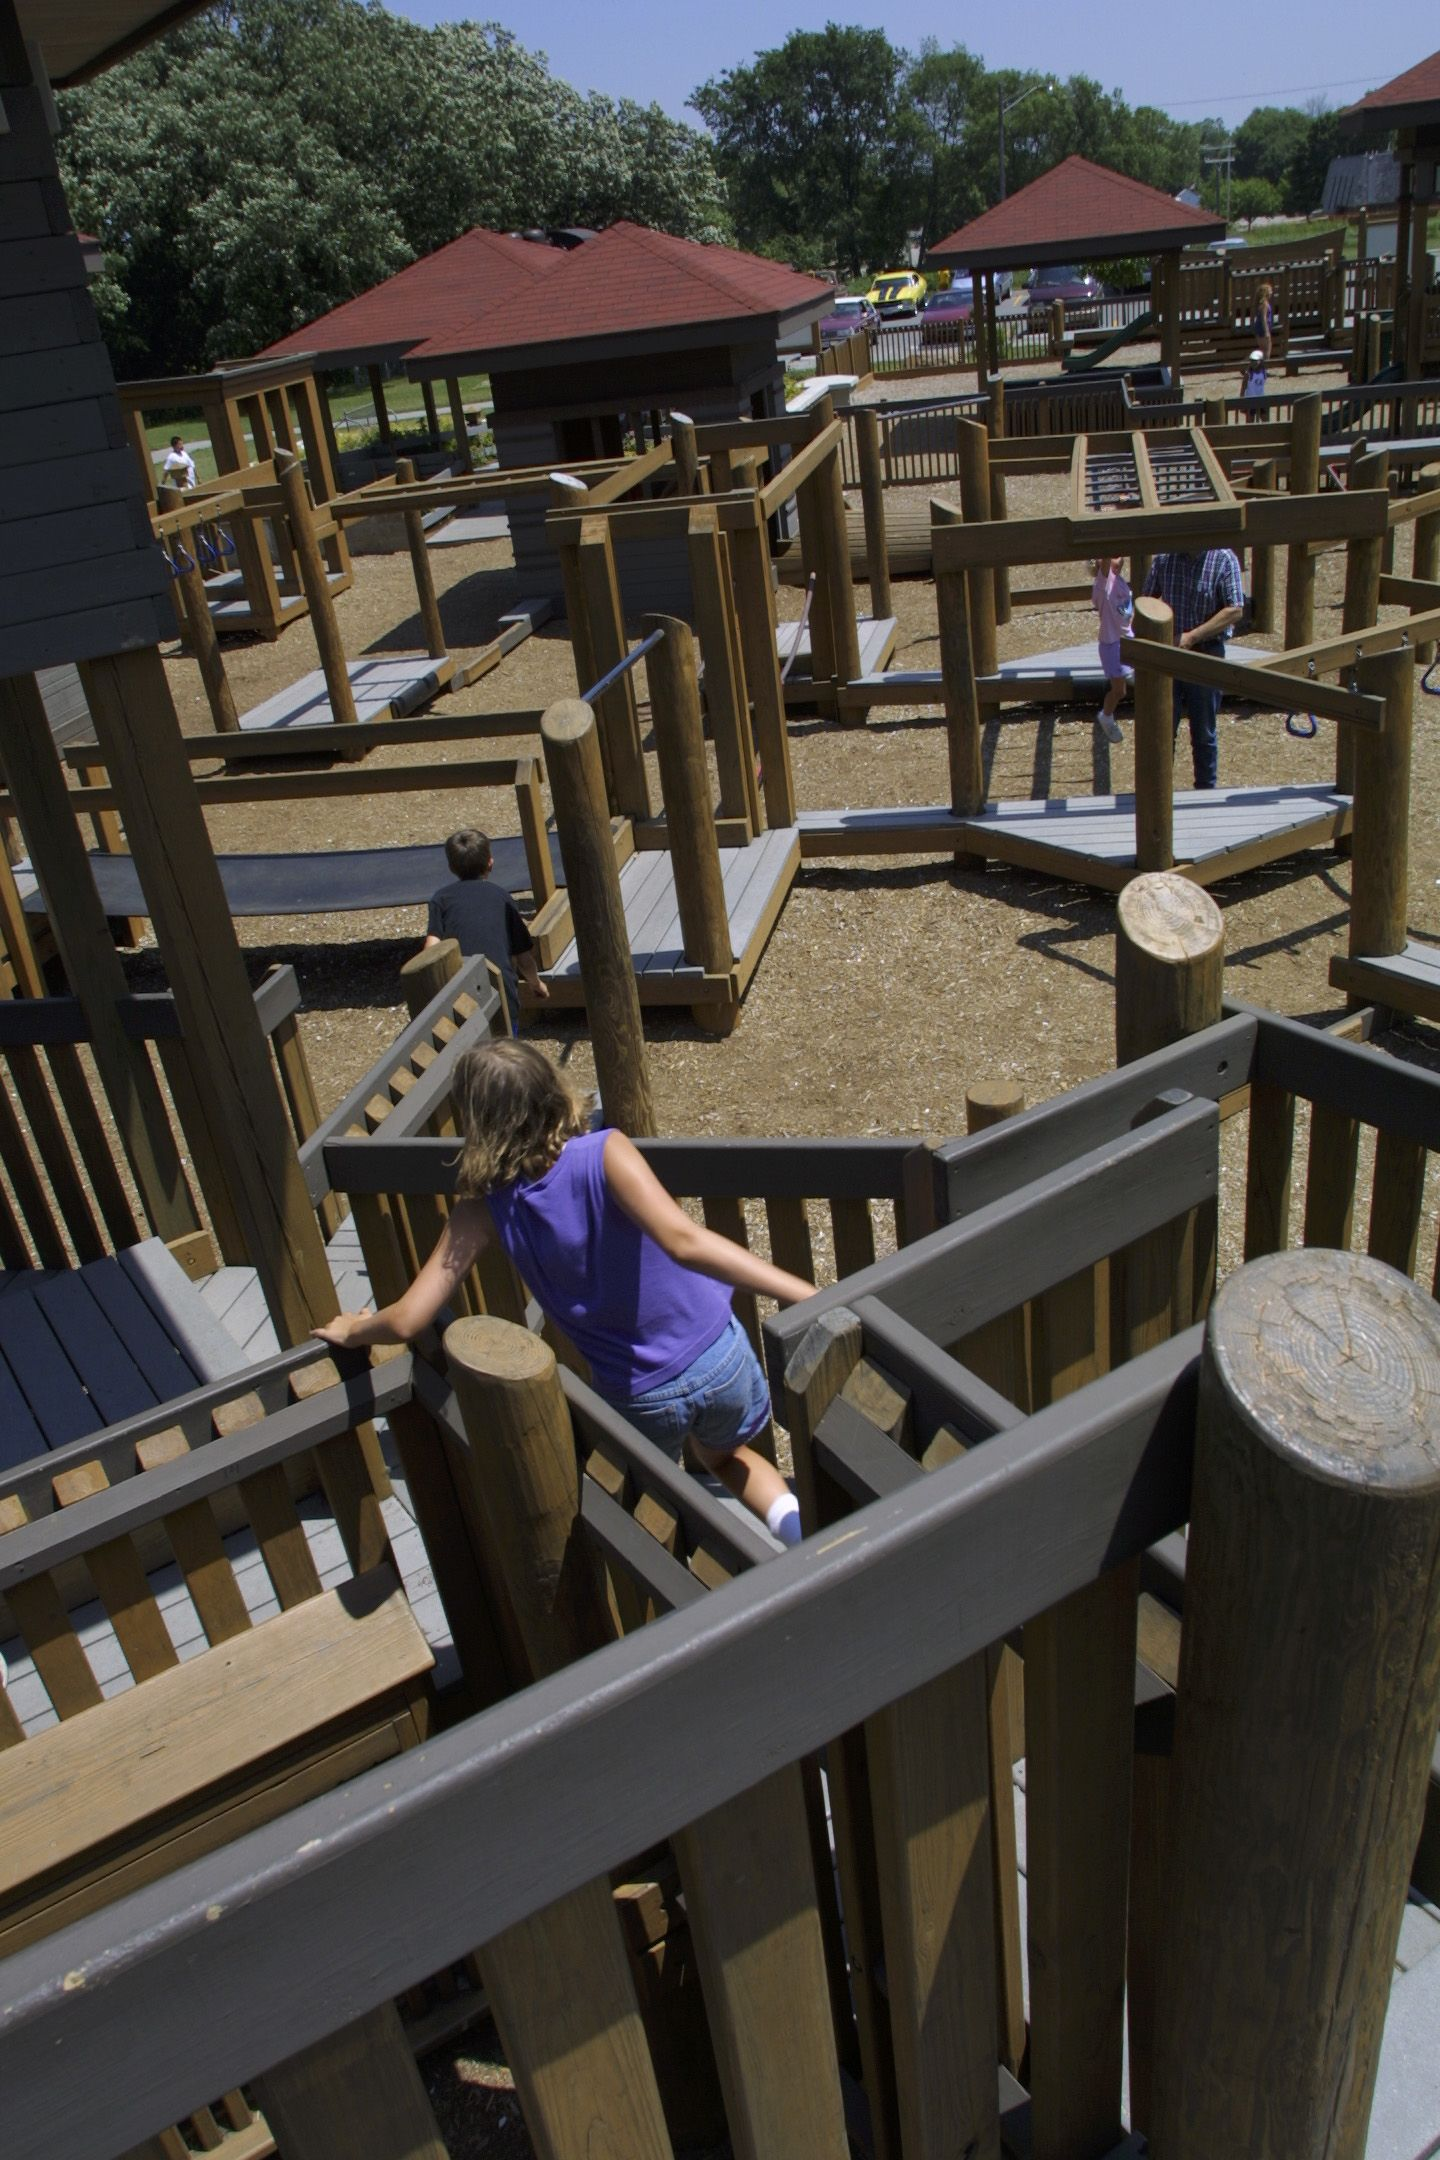 Prairie Playground is the largest outdoor play area in Ma